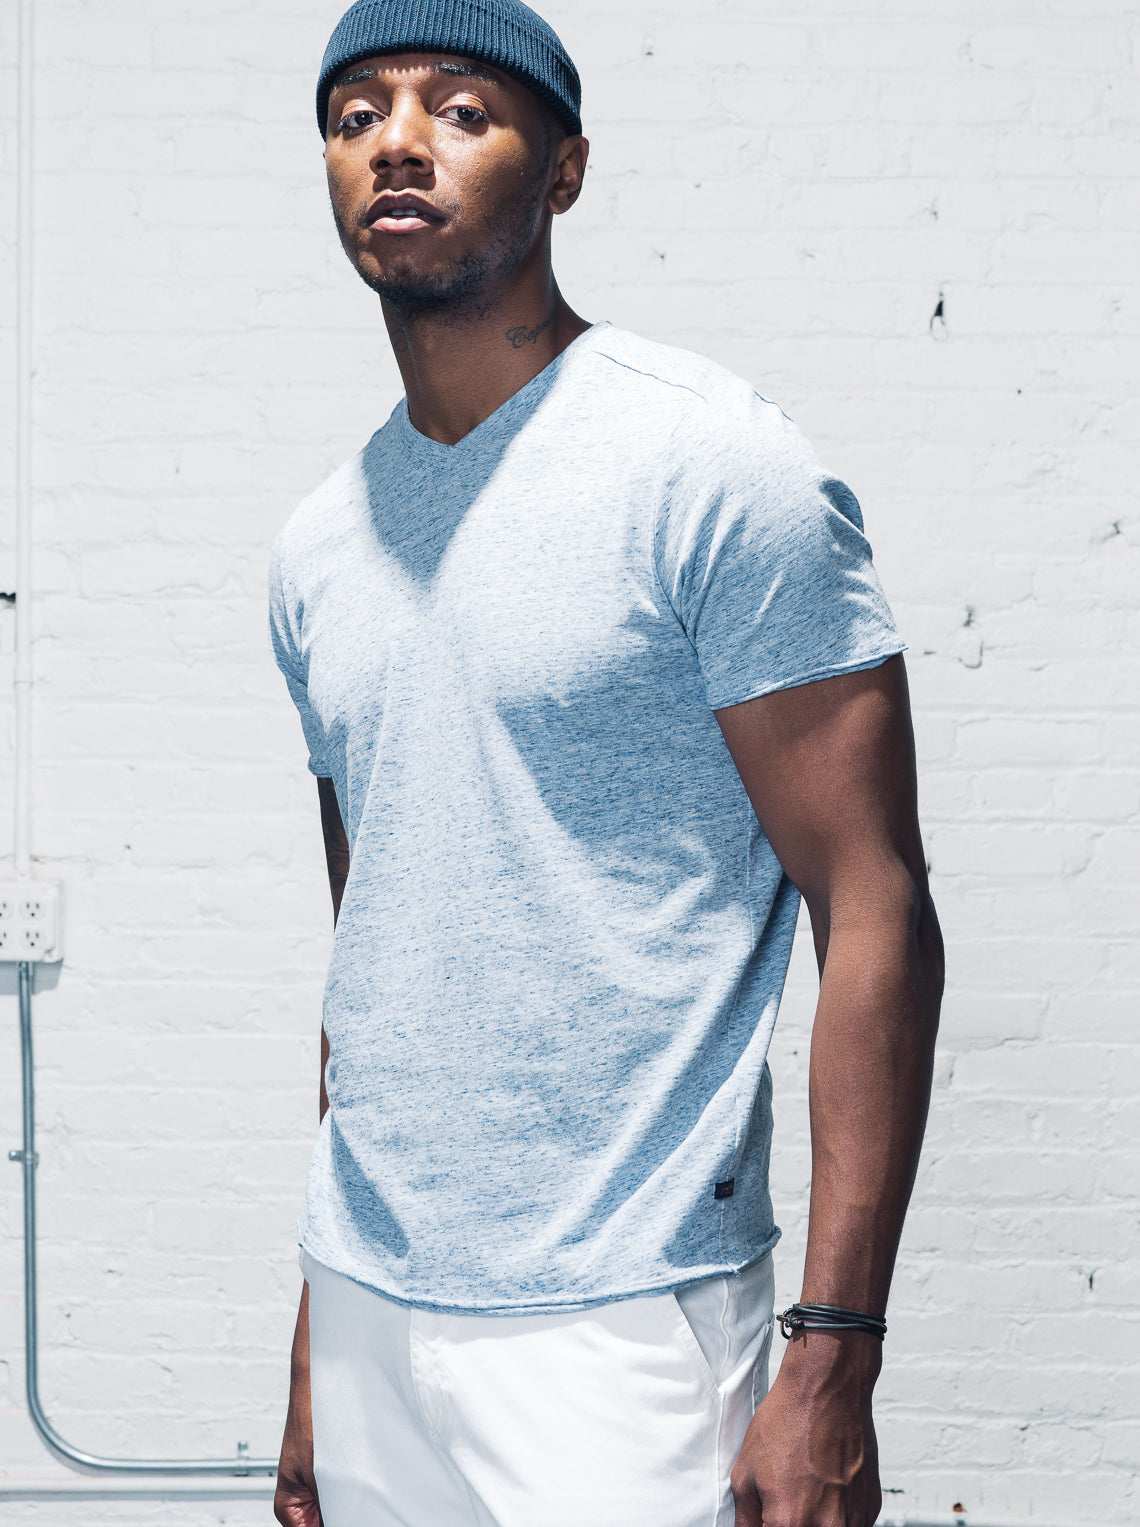 Modern V Neck Tee - Blue Heather - Good Man Brand - Modern V Neck Tee - Blue Heather - Knit Shirts - Good Man Brand